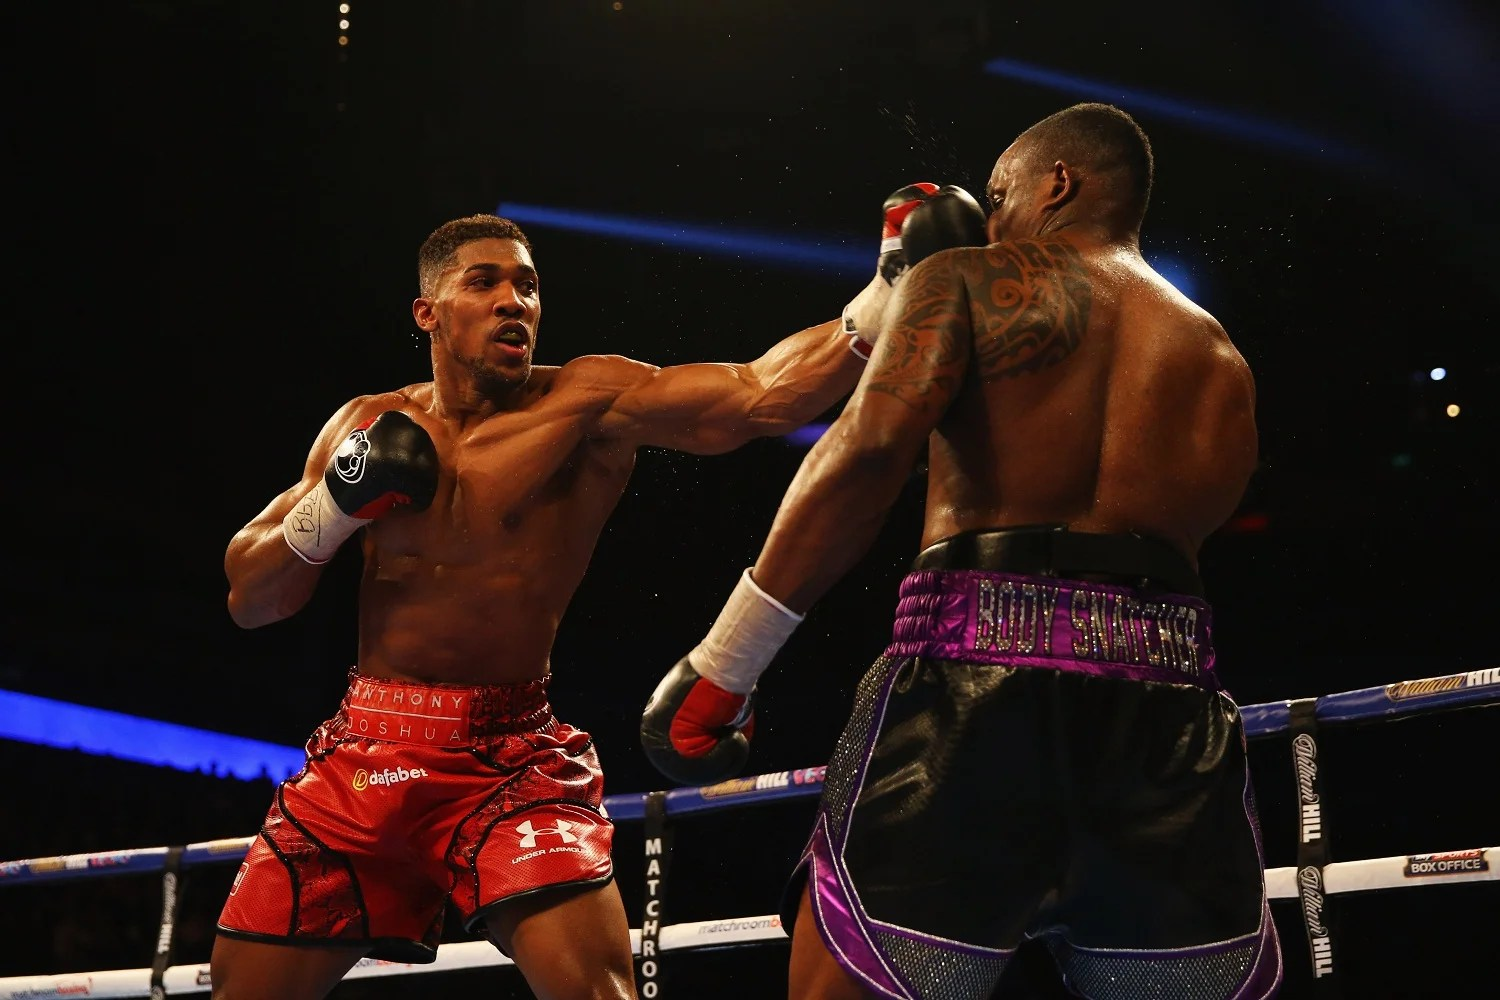 Full Hd Live Wallpaper For Laptop Anthony Joshua Defeats Dillian Whyte By Knockout In Round